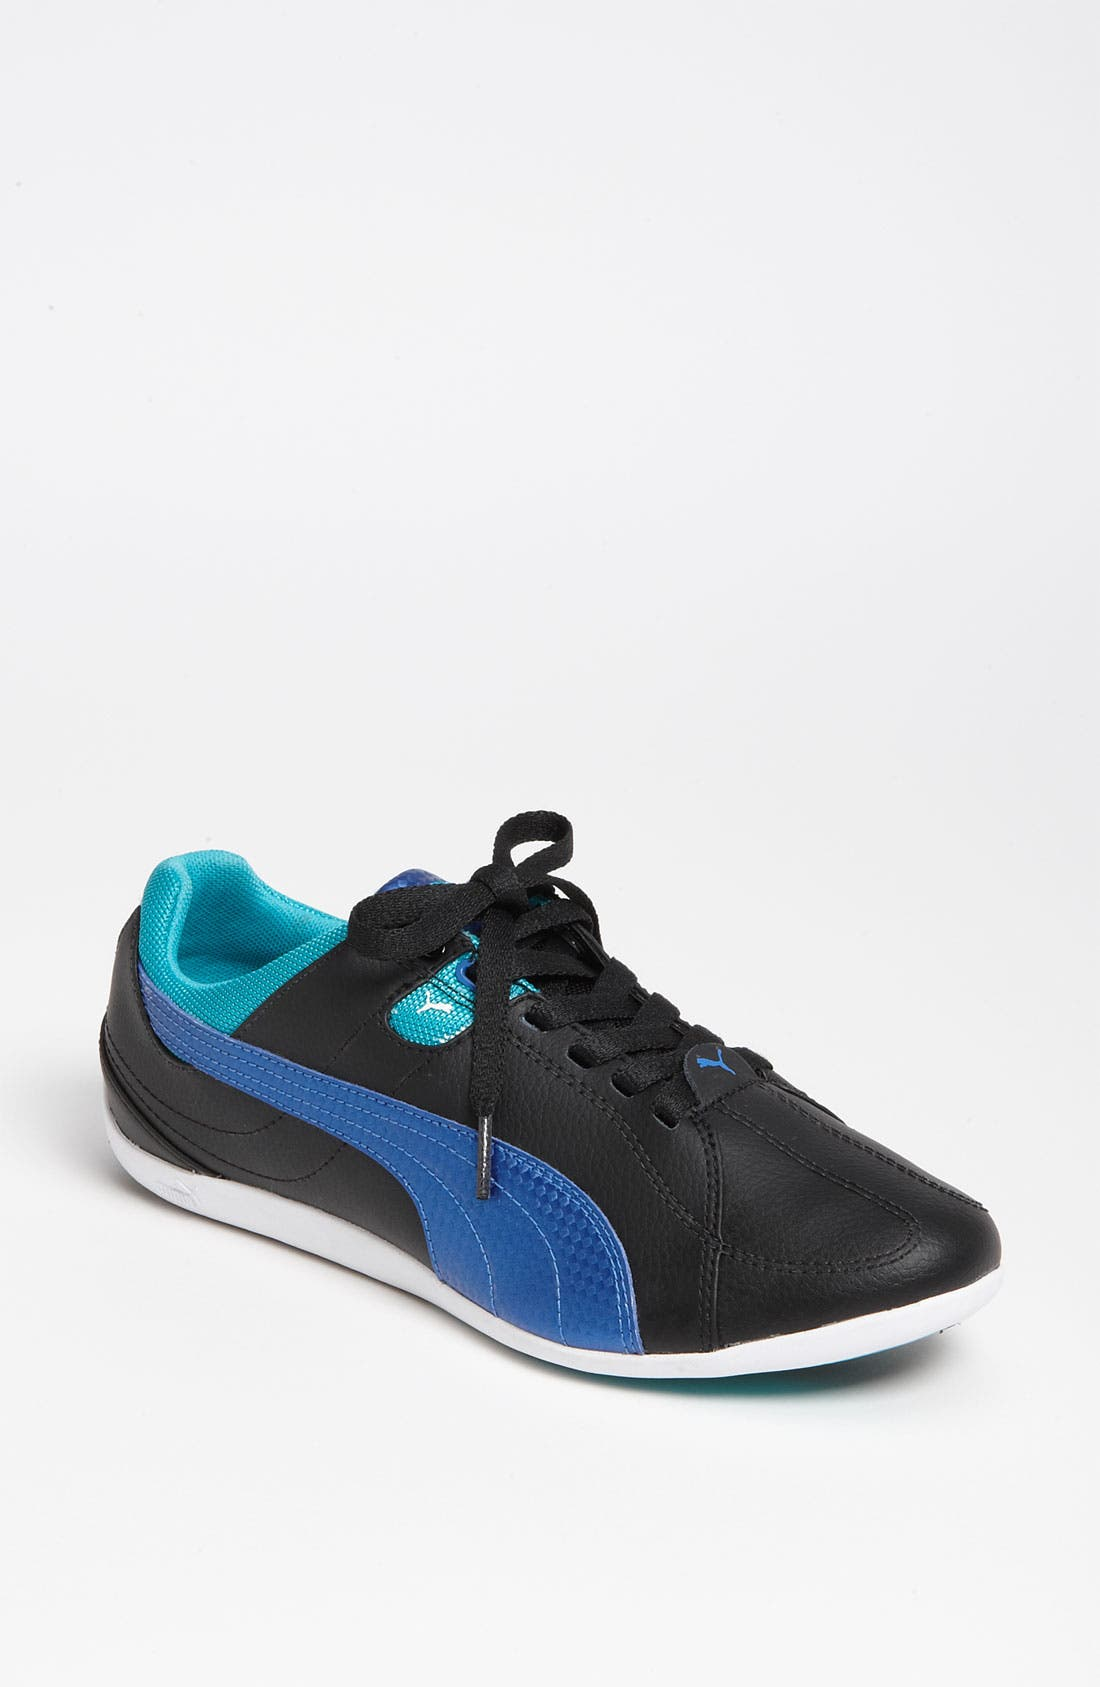 Alternate Image 1 Selected - PUMA 'Track Cat' Sneaker (Women)